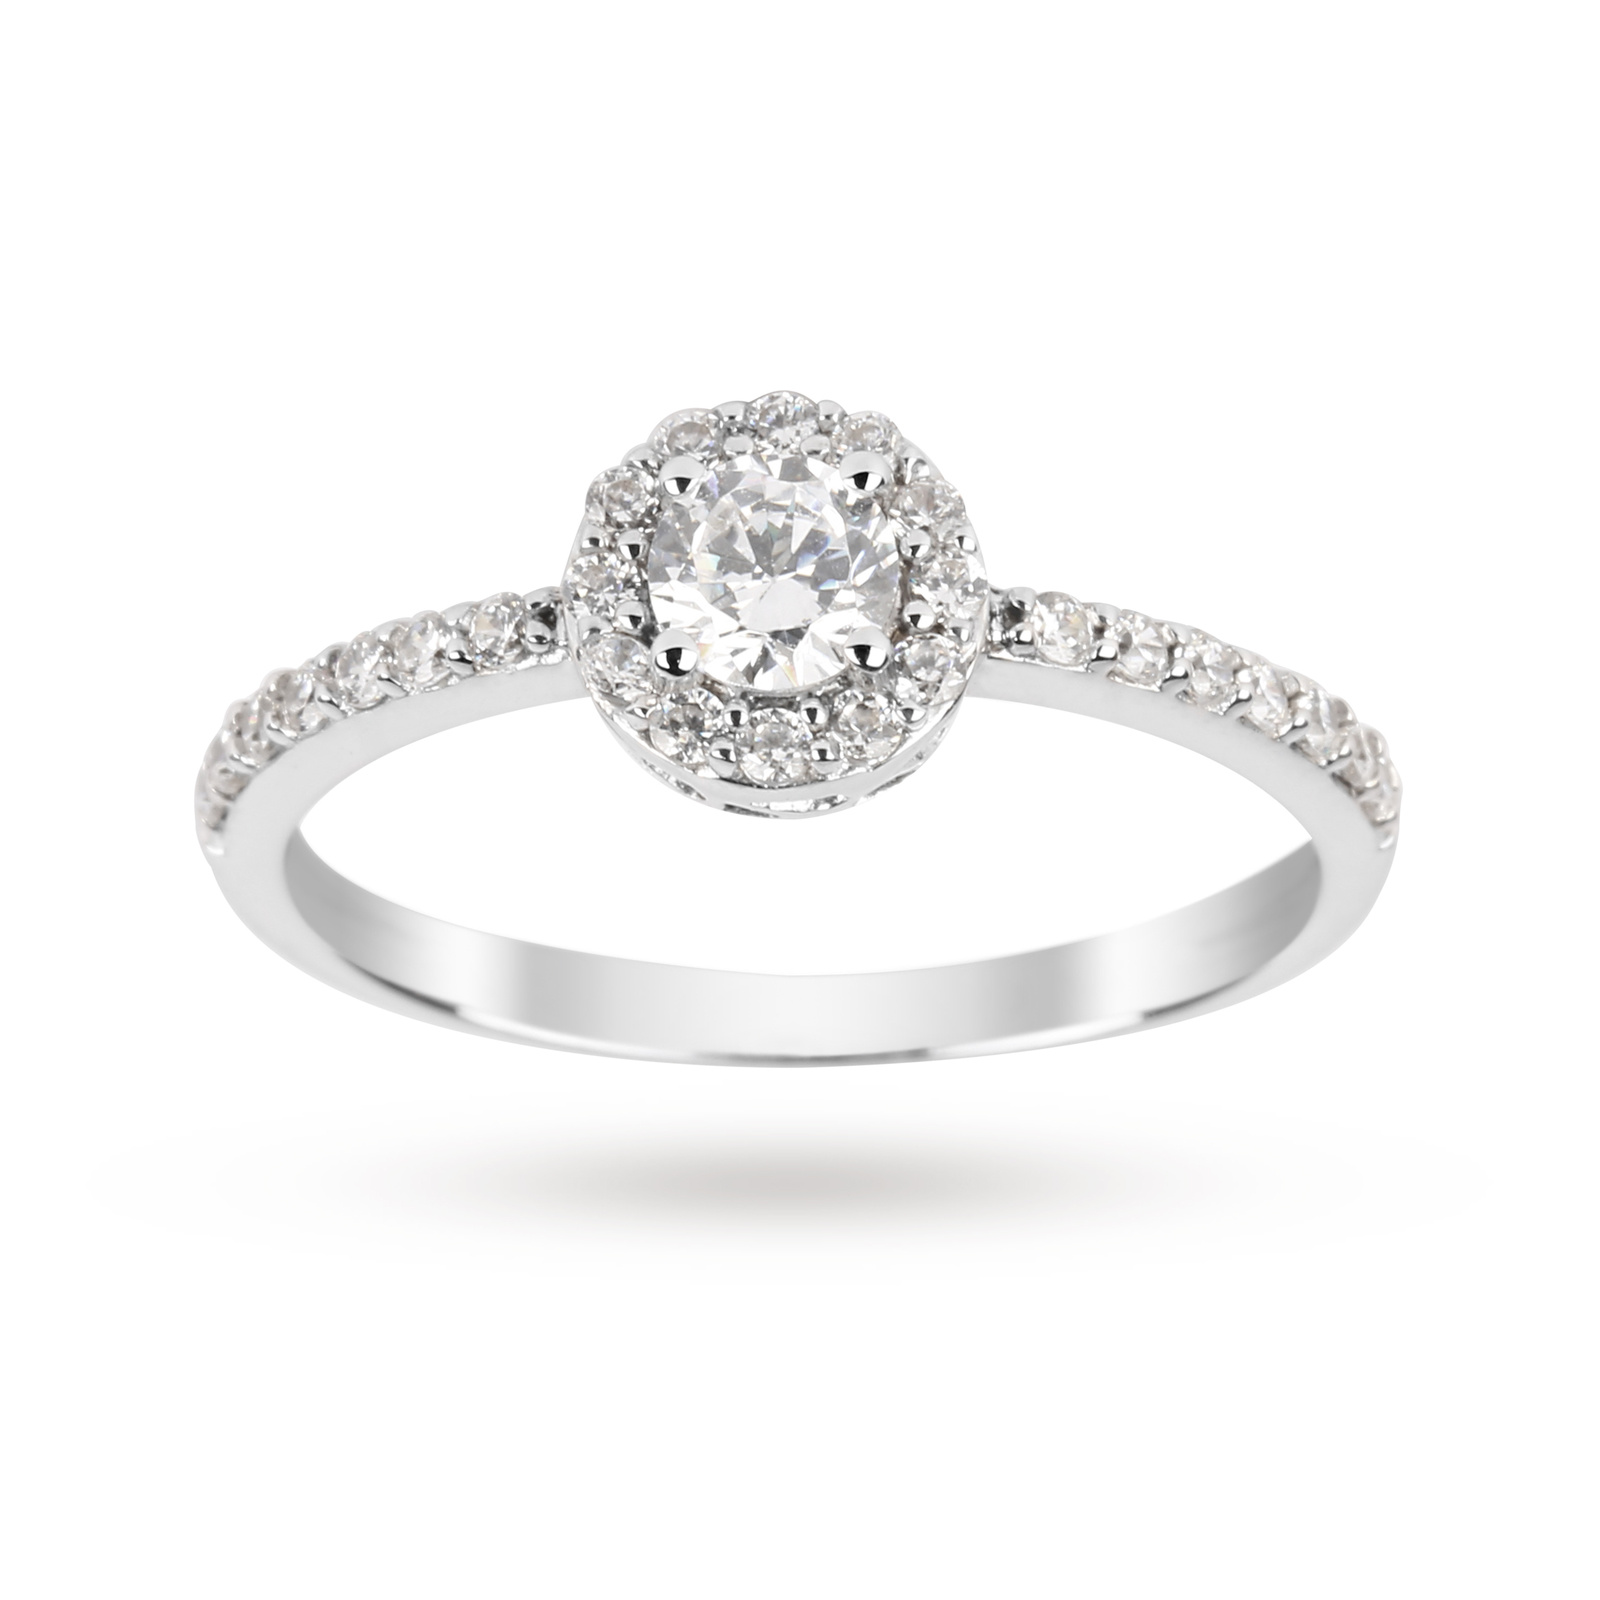 Brilliant Cut Cubic Zirconia Ring In 9 Carat White Gold